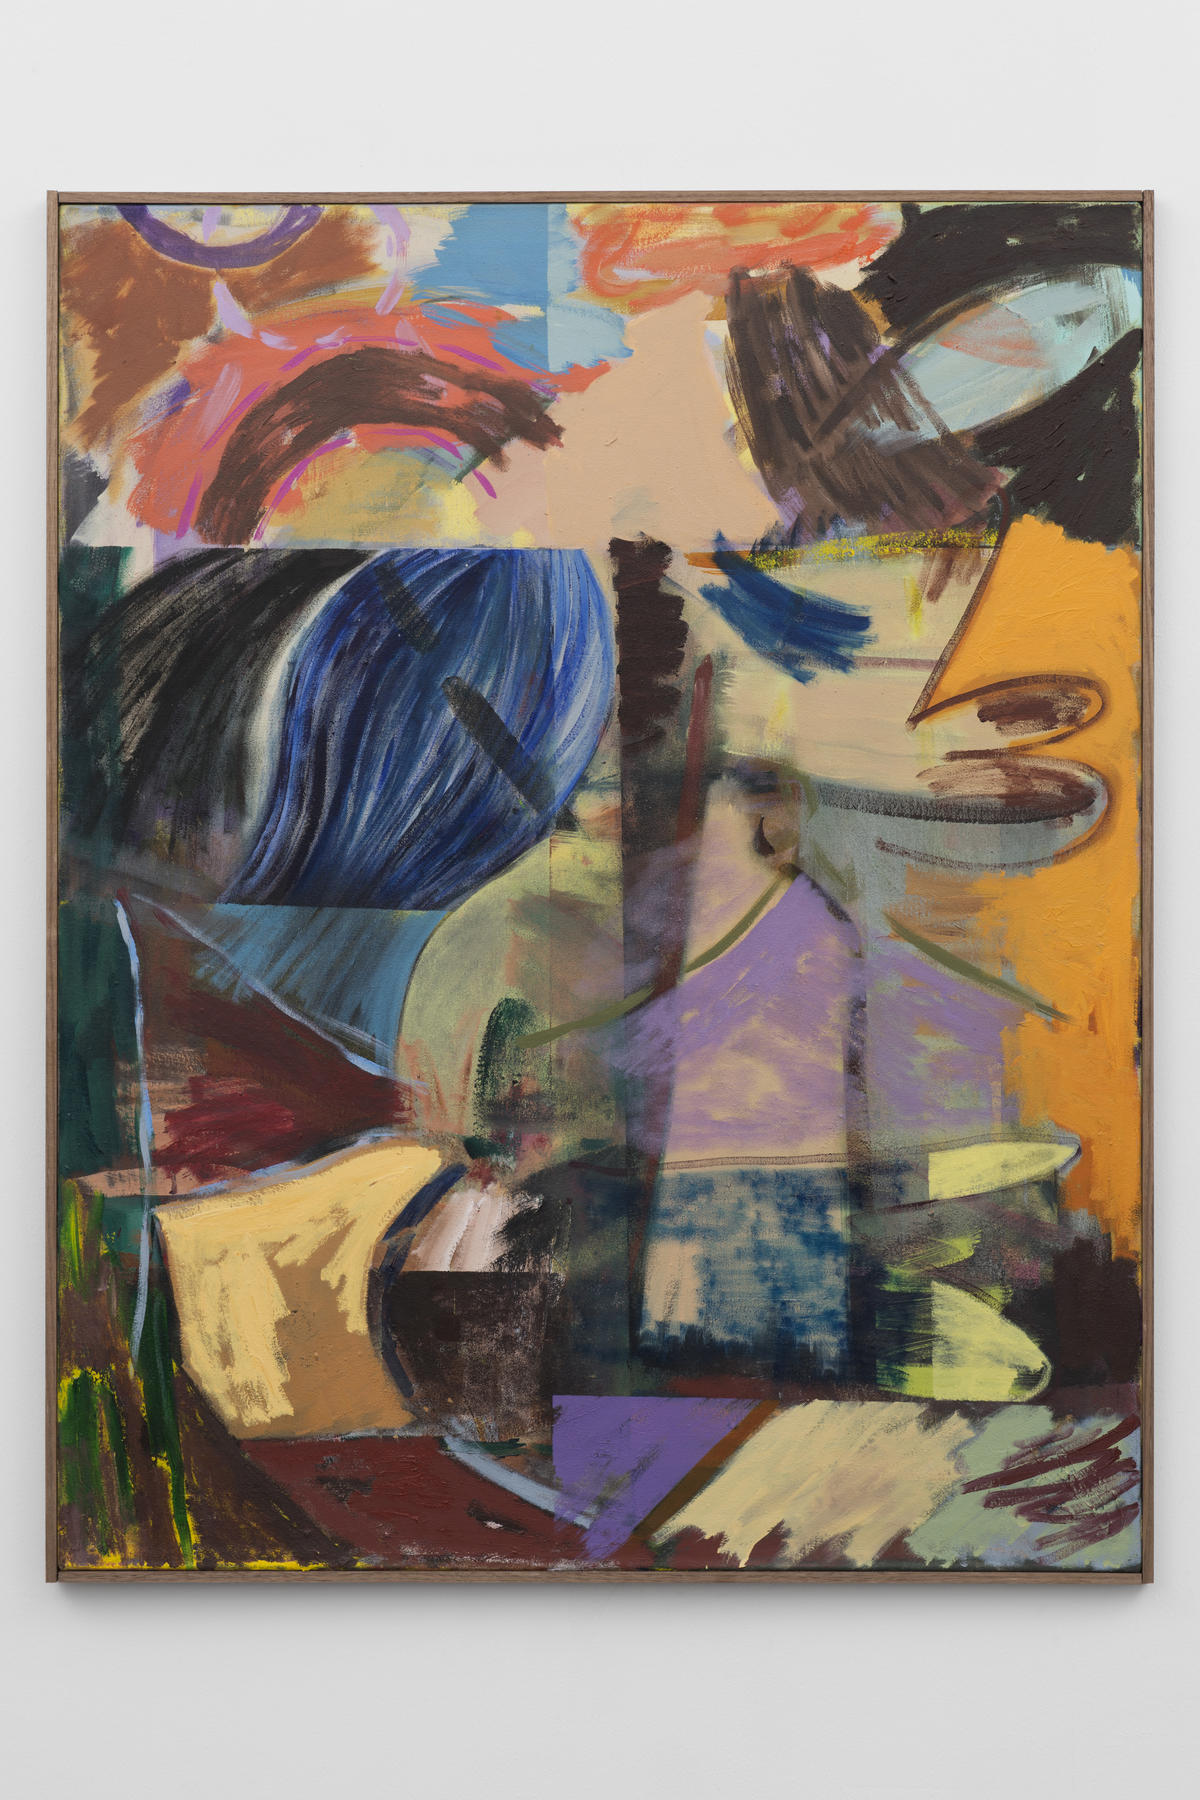 6-Jon-Pilkington-To-Be-Titled-Oil, wax crayon and lacquer on canvas -image courtesy CINNNAMON Rotterdam